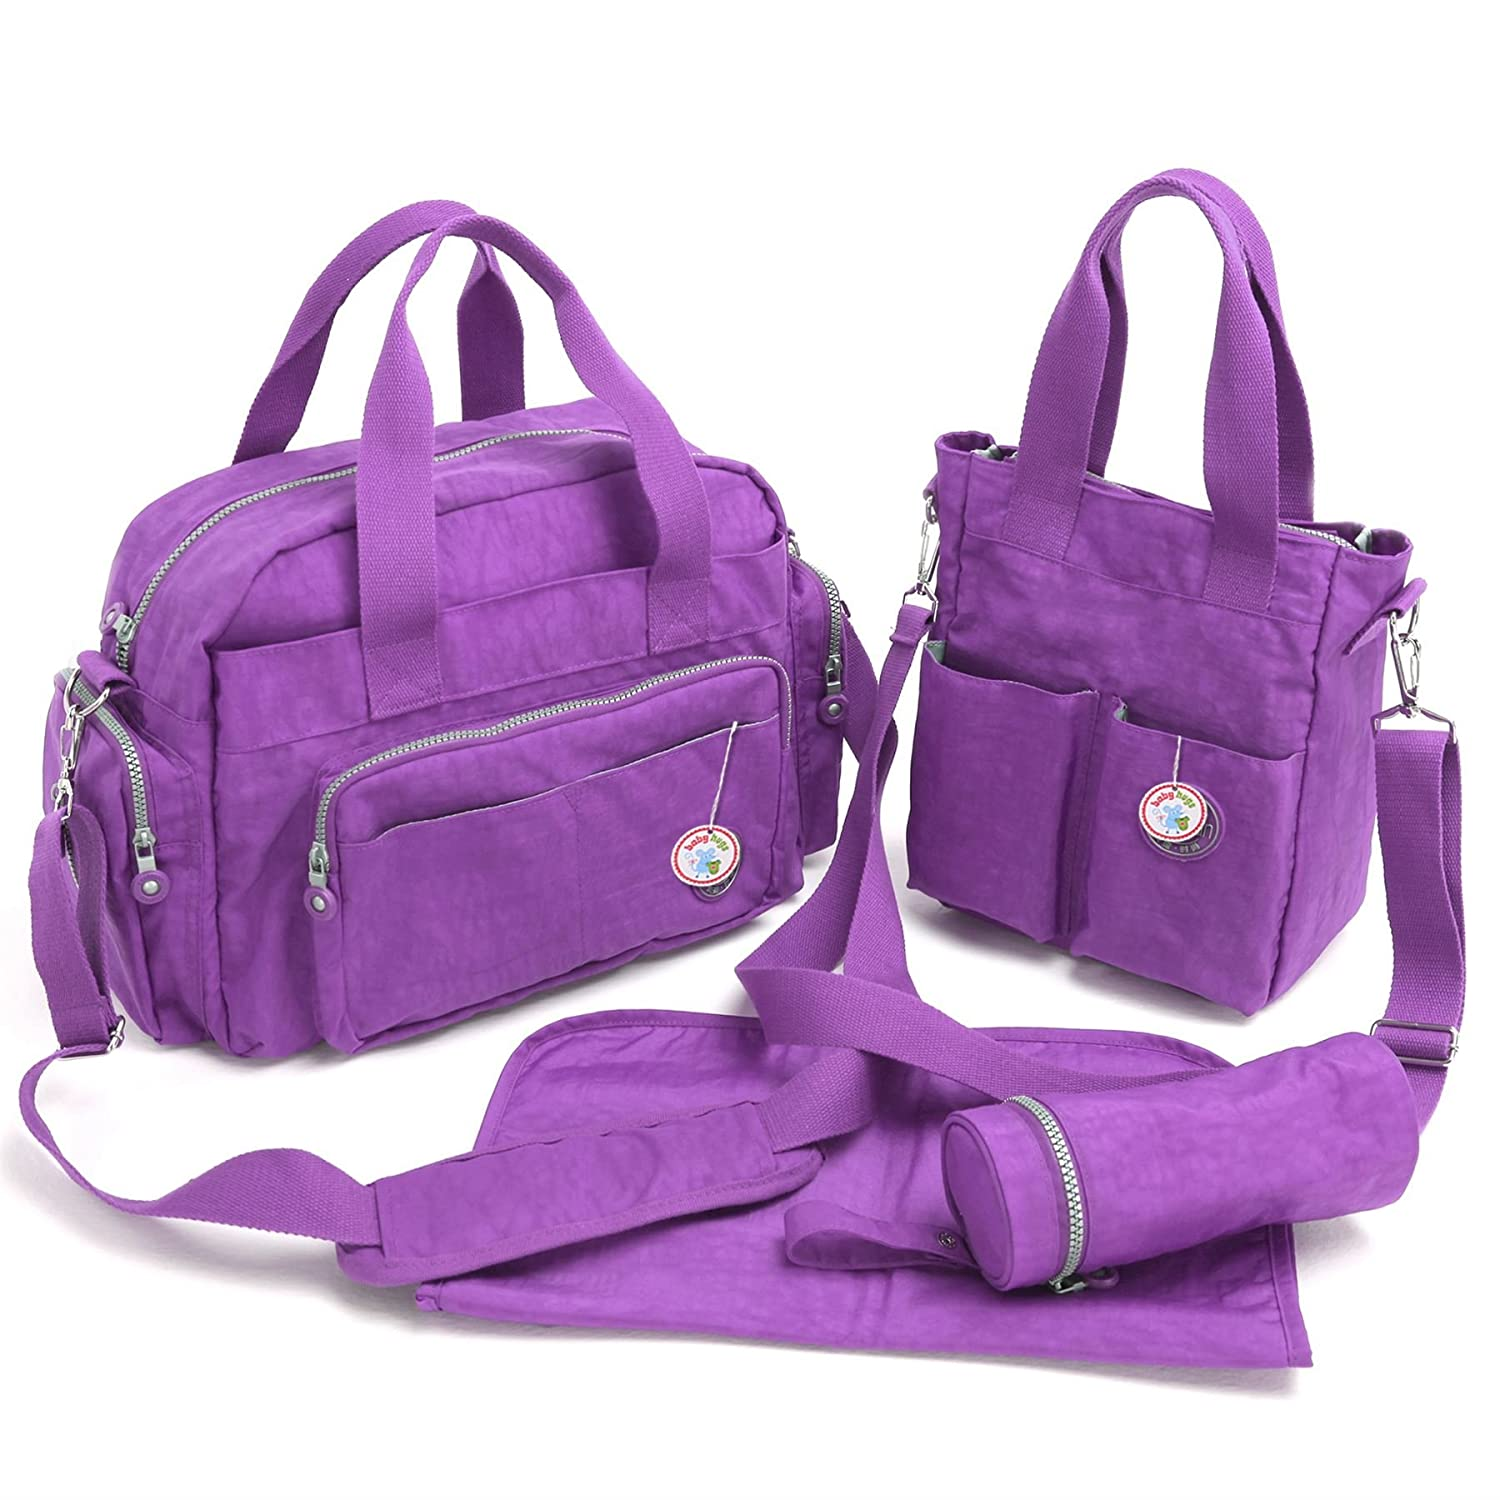 Babyhugs® 4pcs bebé Chic cambiar pañales pañales Messenger Bag Set, Color Morado